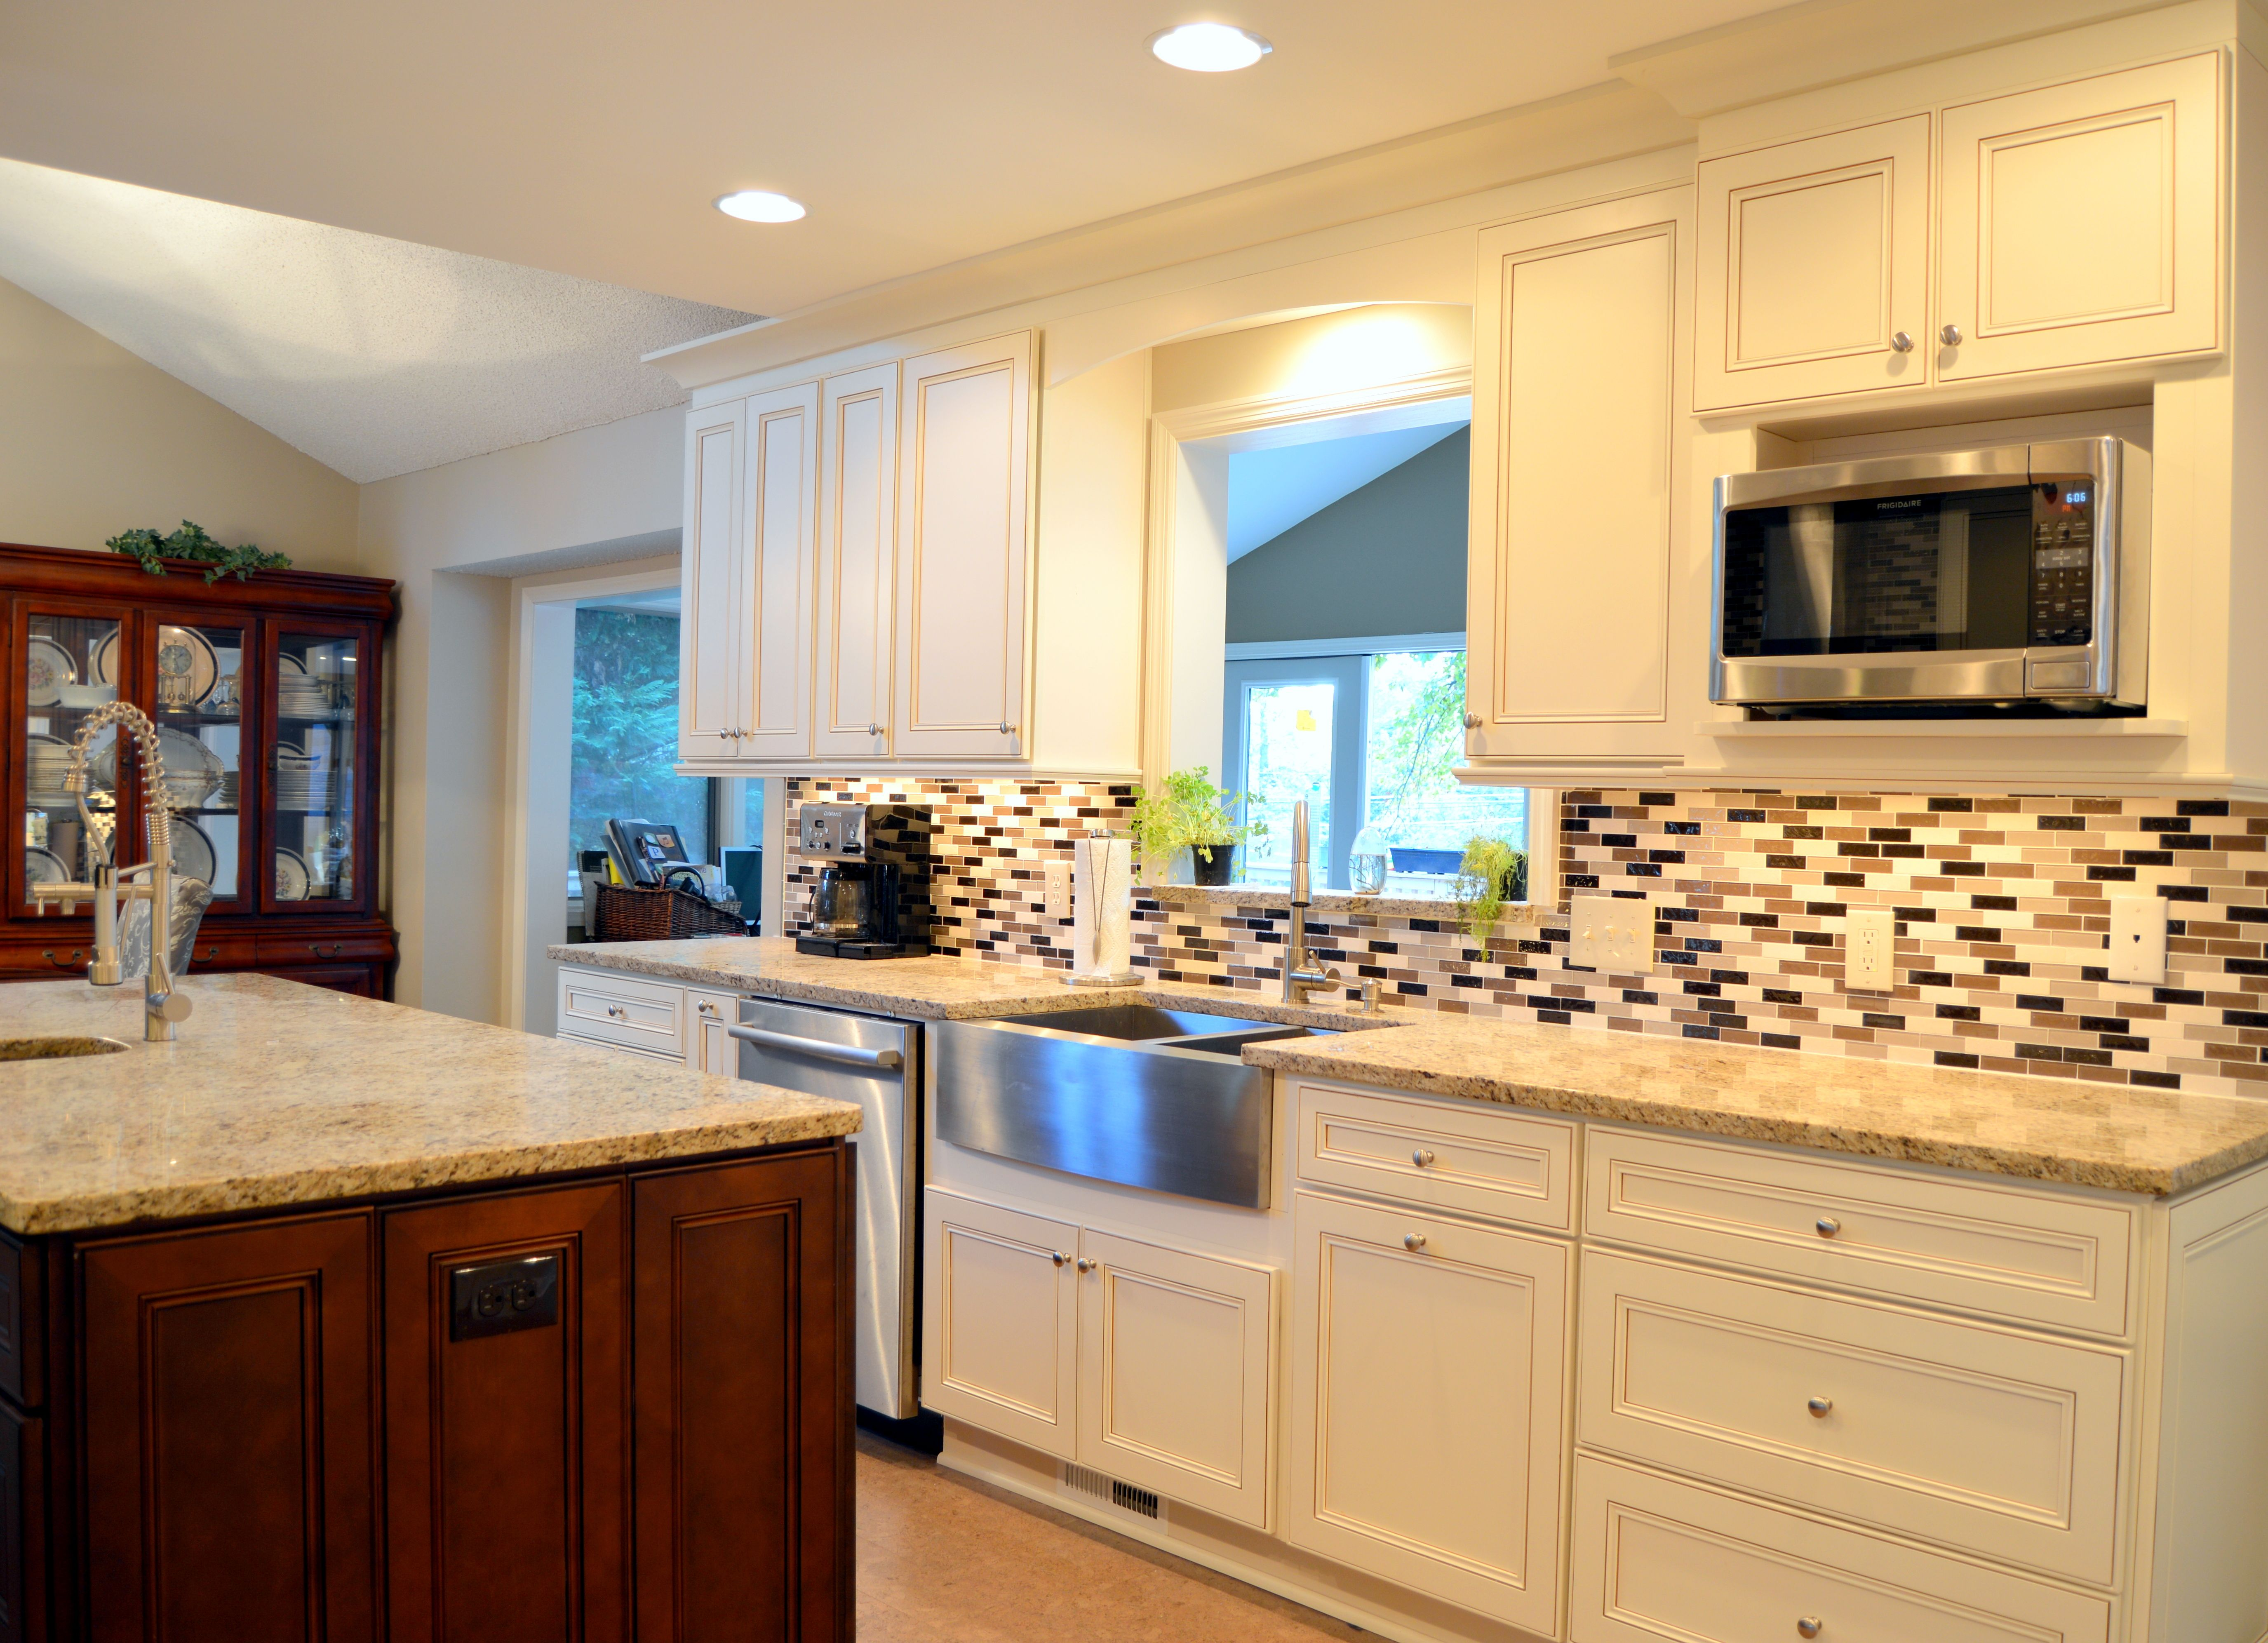 York Antique White And Chocolate Cabinets Mixed Glass Mosaic Backsplash Stainless Steel App Kitchen Remodel Small Kitchen Remodel Inexpensive Kitchen Remodel